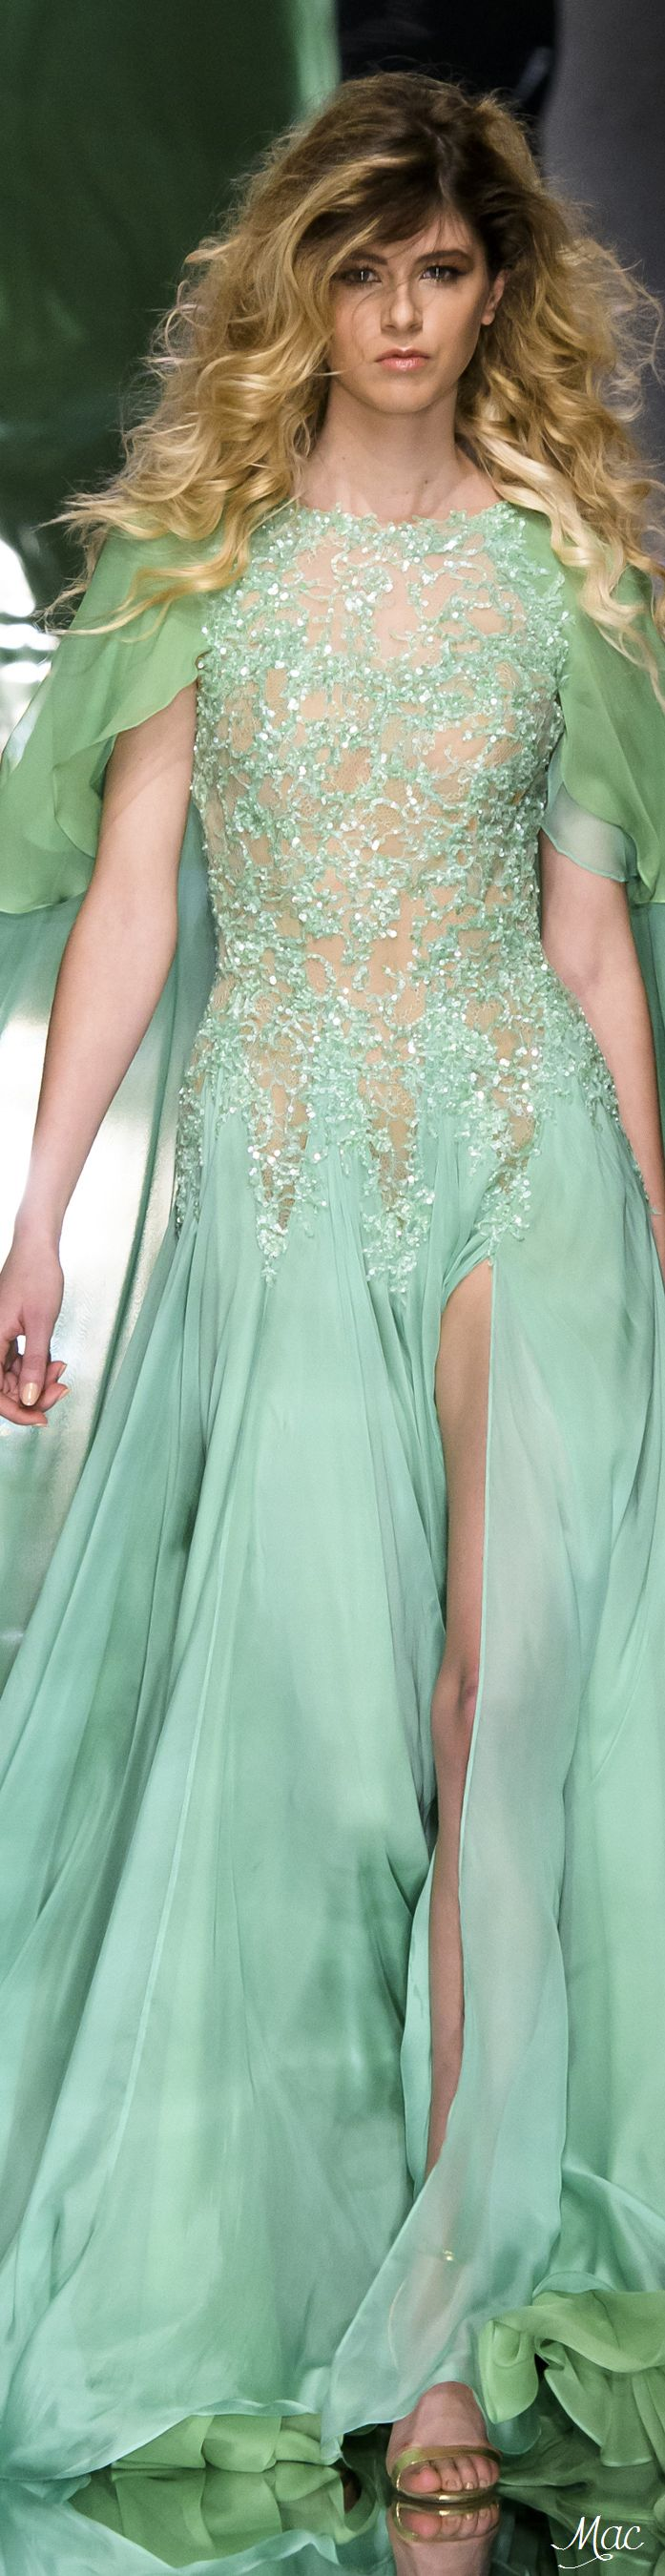 43536 best ♕♕Pretty DreSSeS & GoWns♕♕ images on Pinterest | High ...